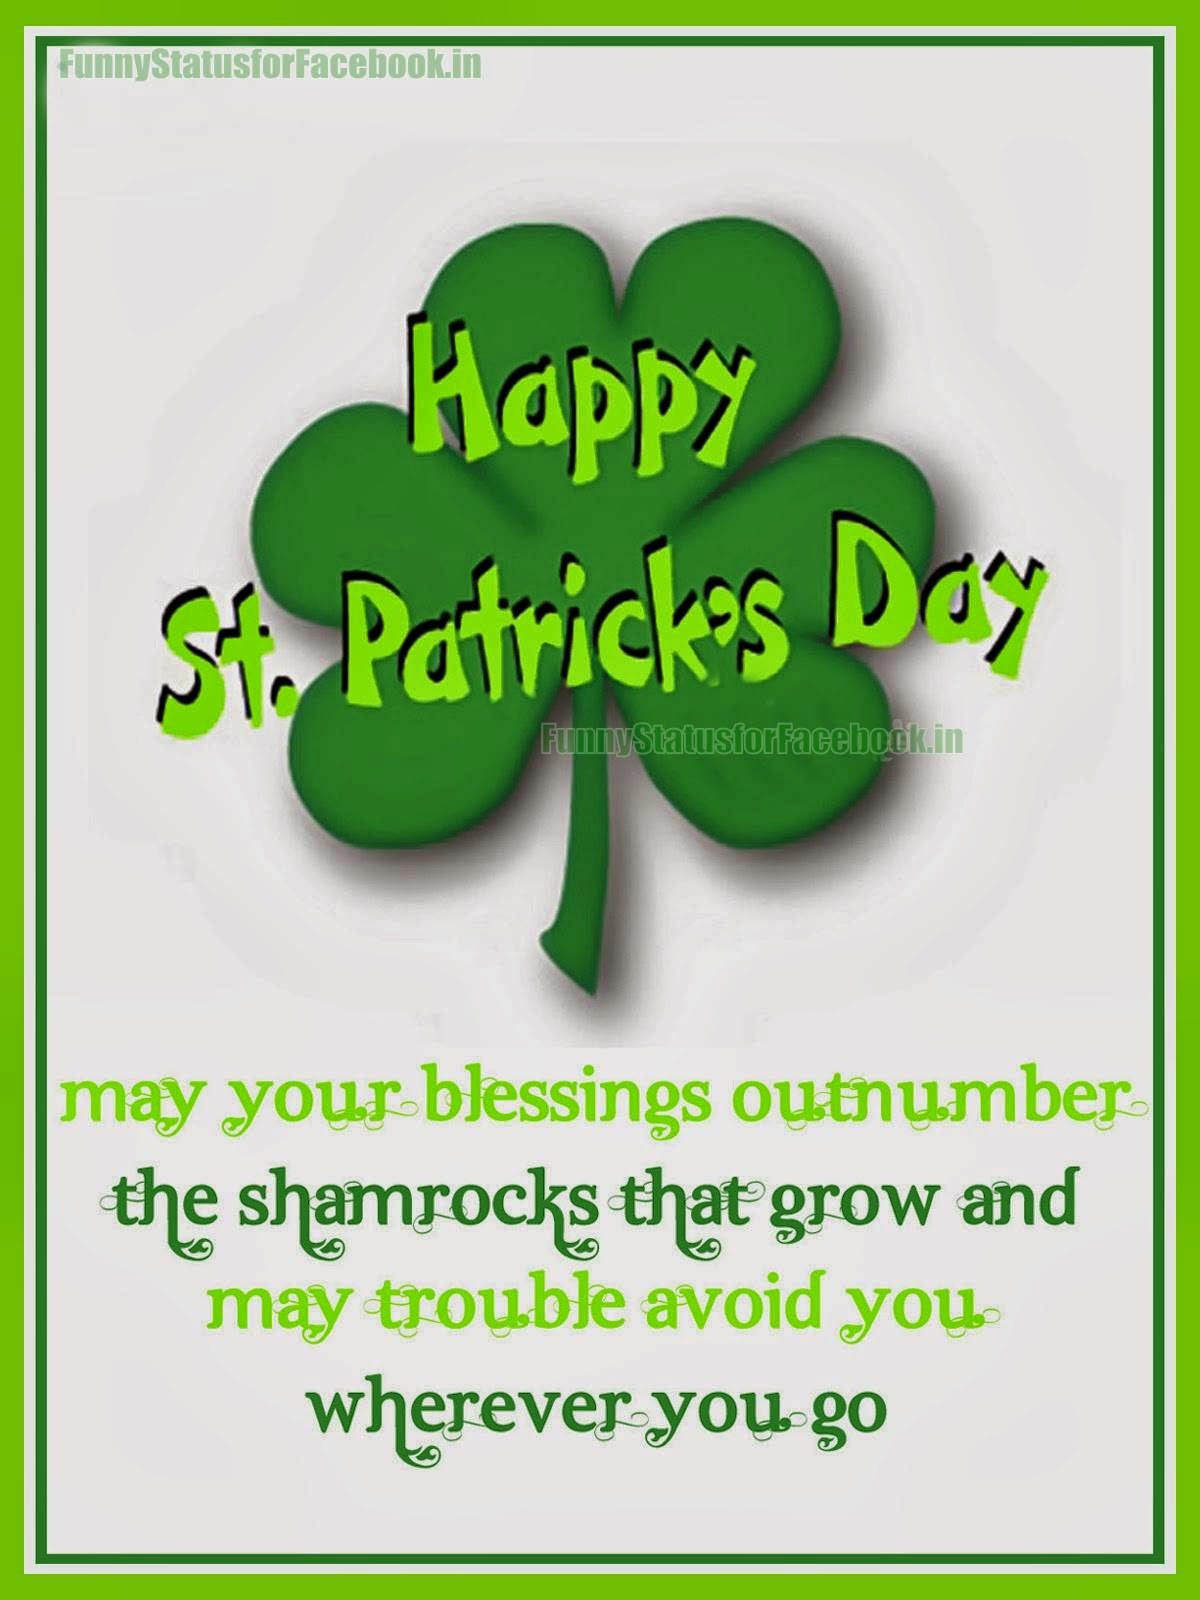 Englishmania happy st patrick 39 s day for Funny irish sayings for st patrick day